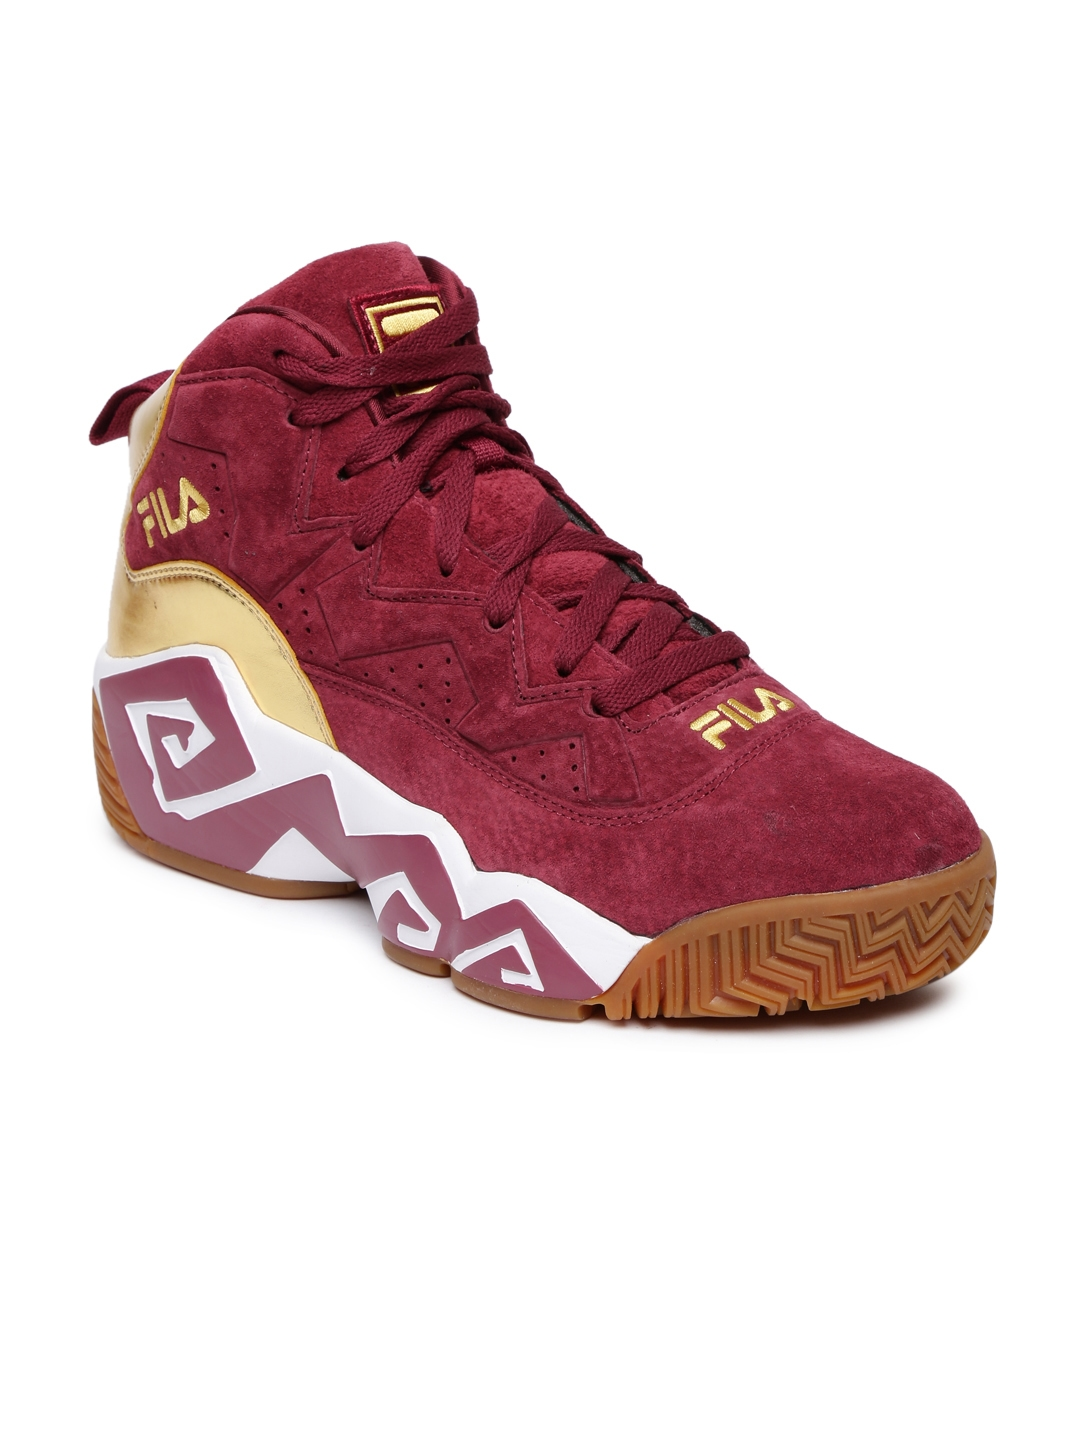 7d3831ed5799 Buy FILA Men Maroon Solid MB Suede Sneakers - Casual Shoes for Men ...